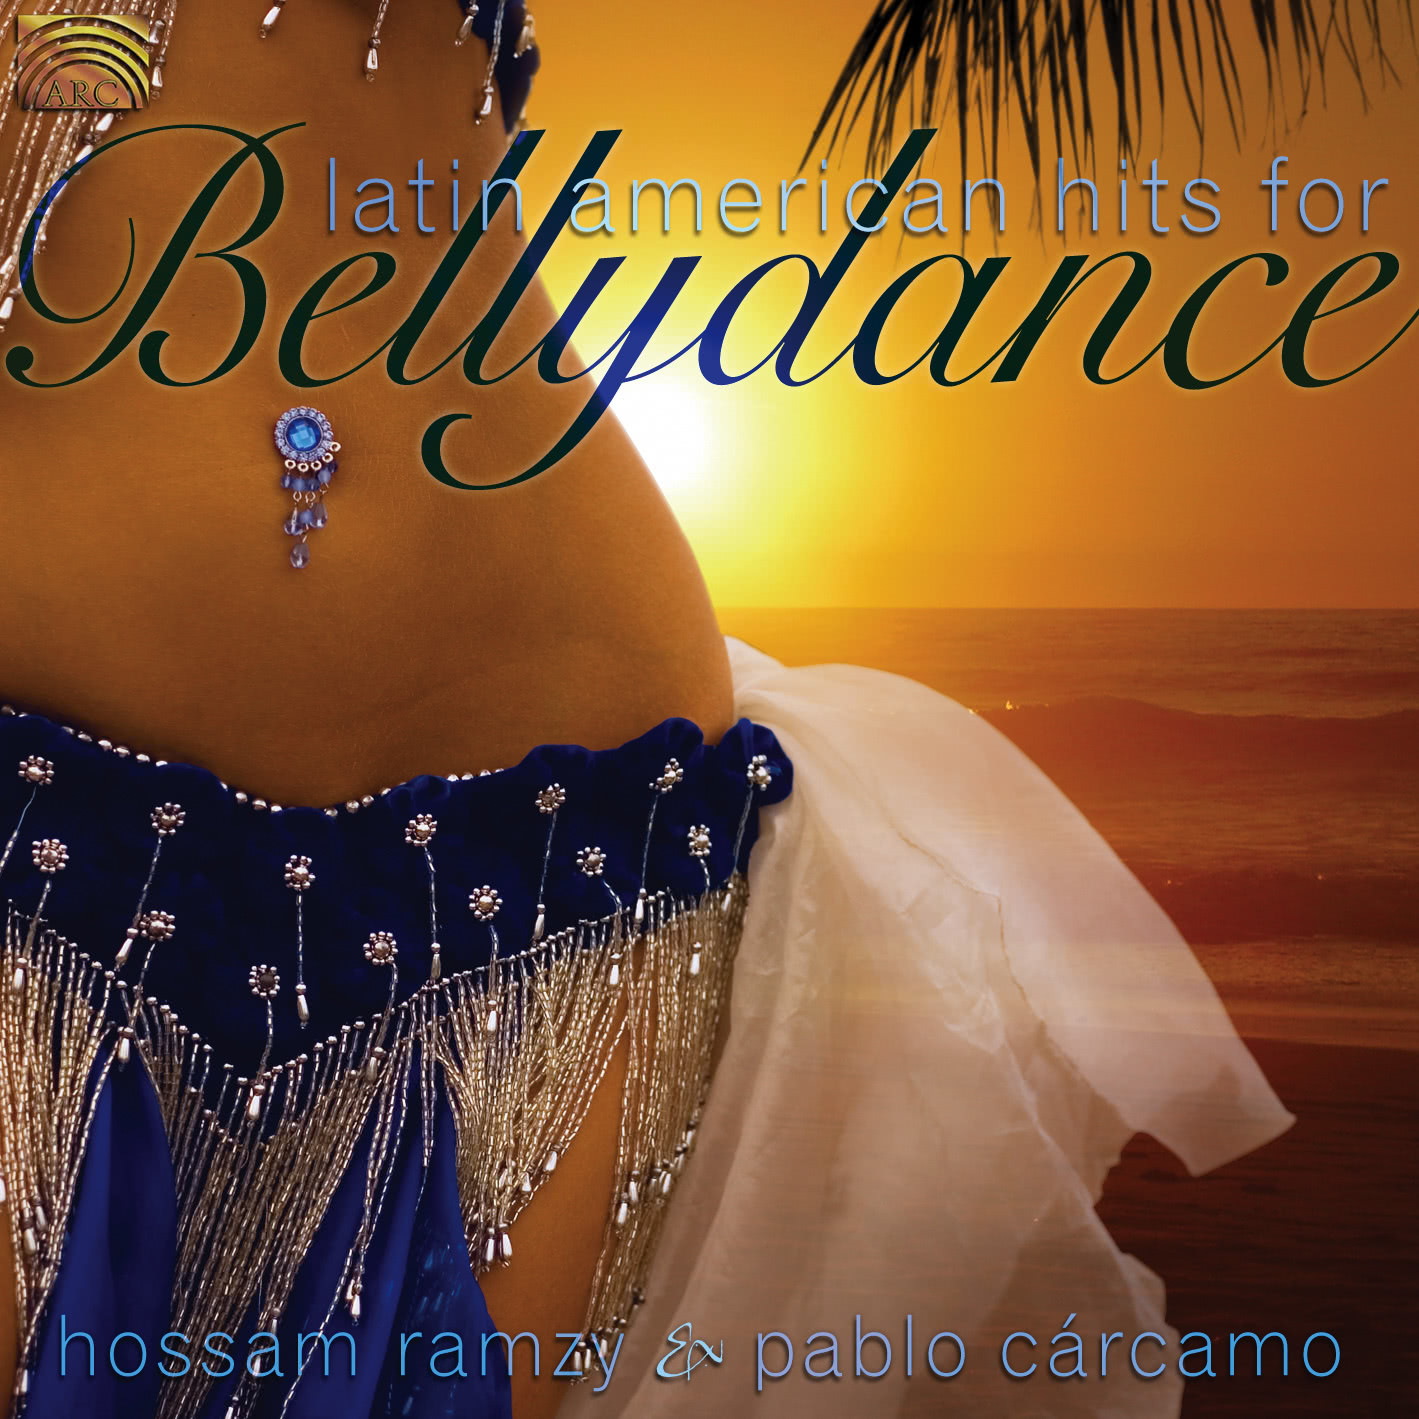 EUCD2059 Latin American Hits for Bellydance